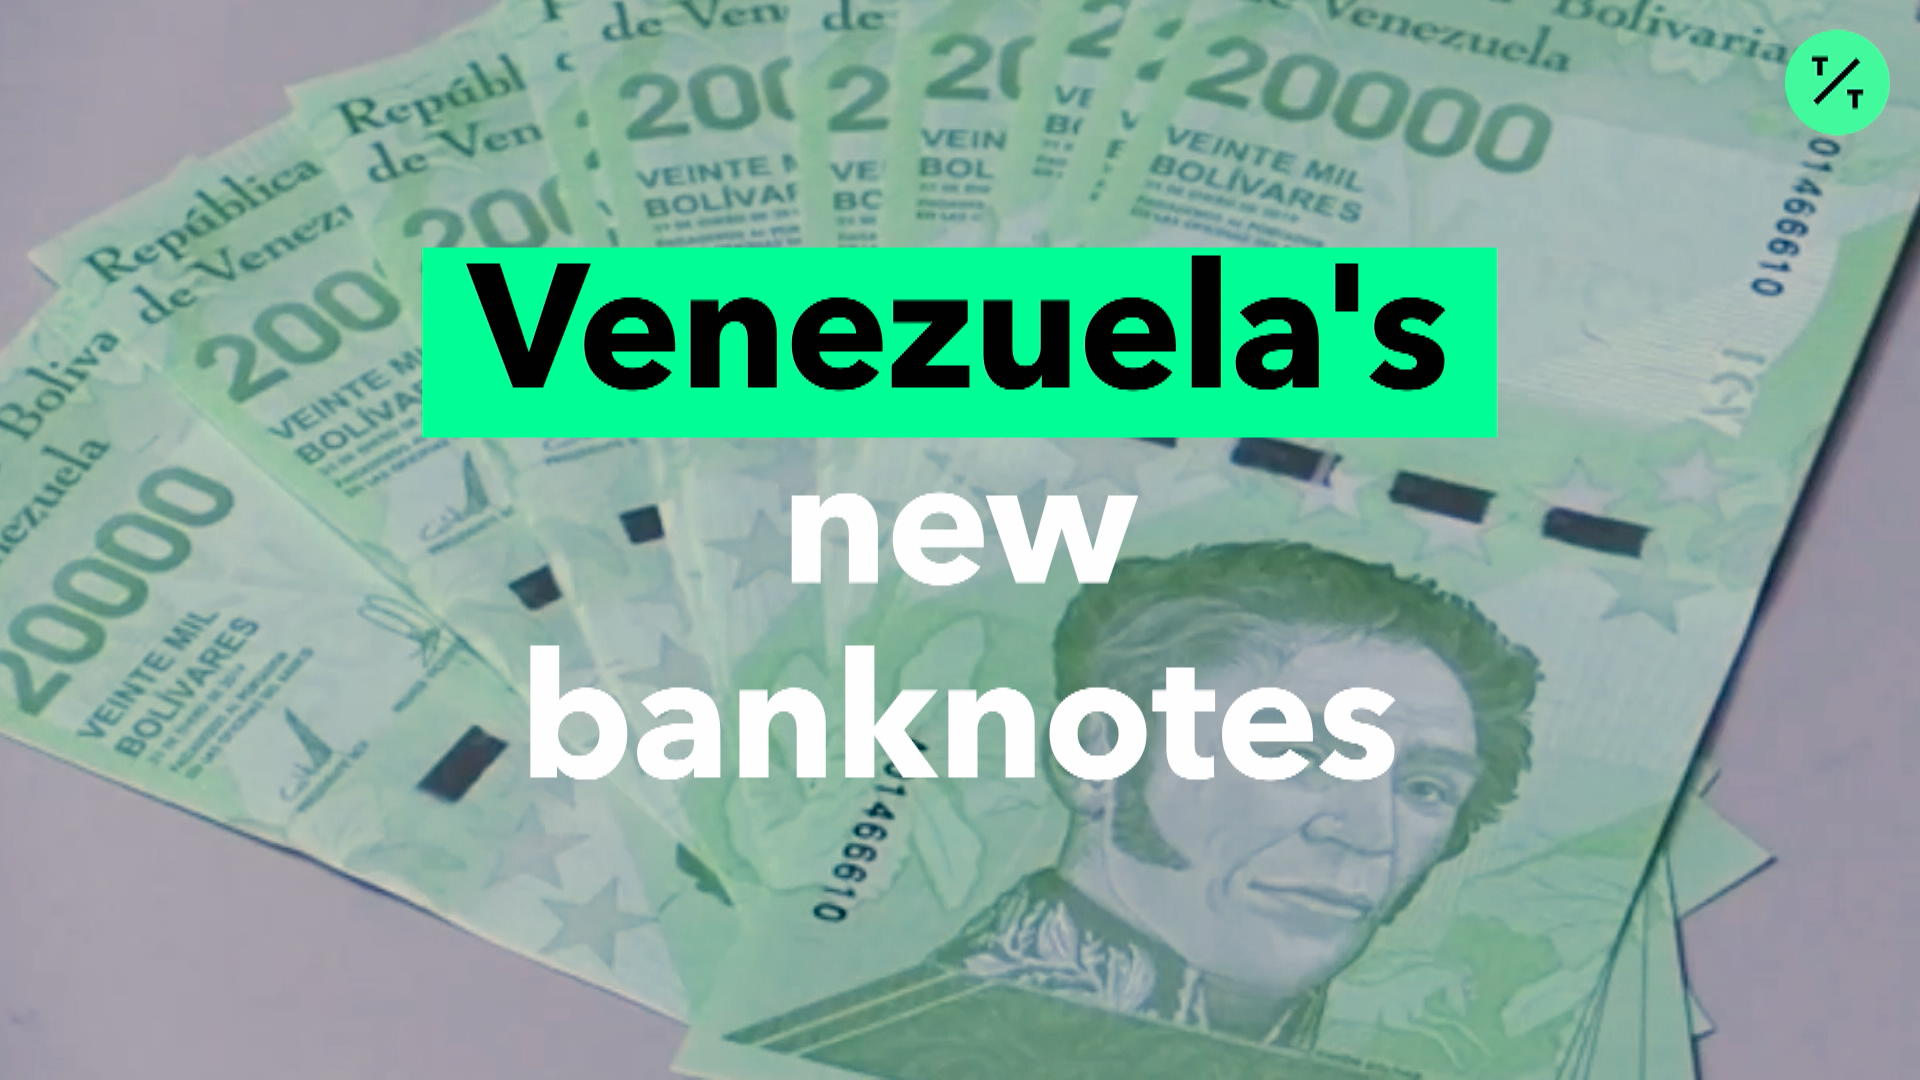 Venezuela Rolls Out New Banknotes